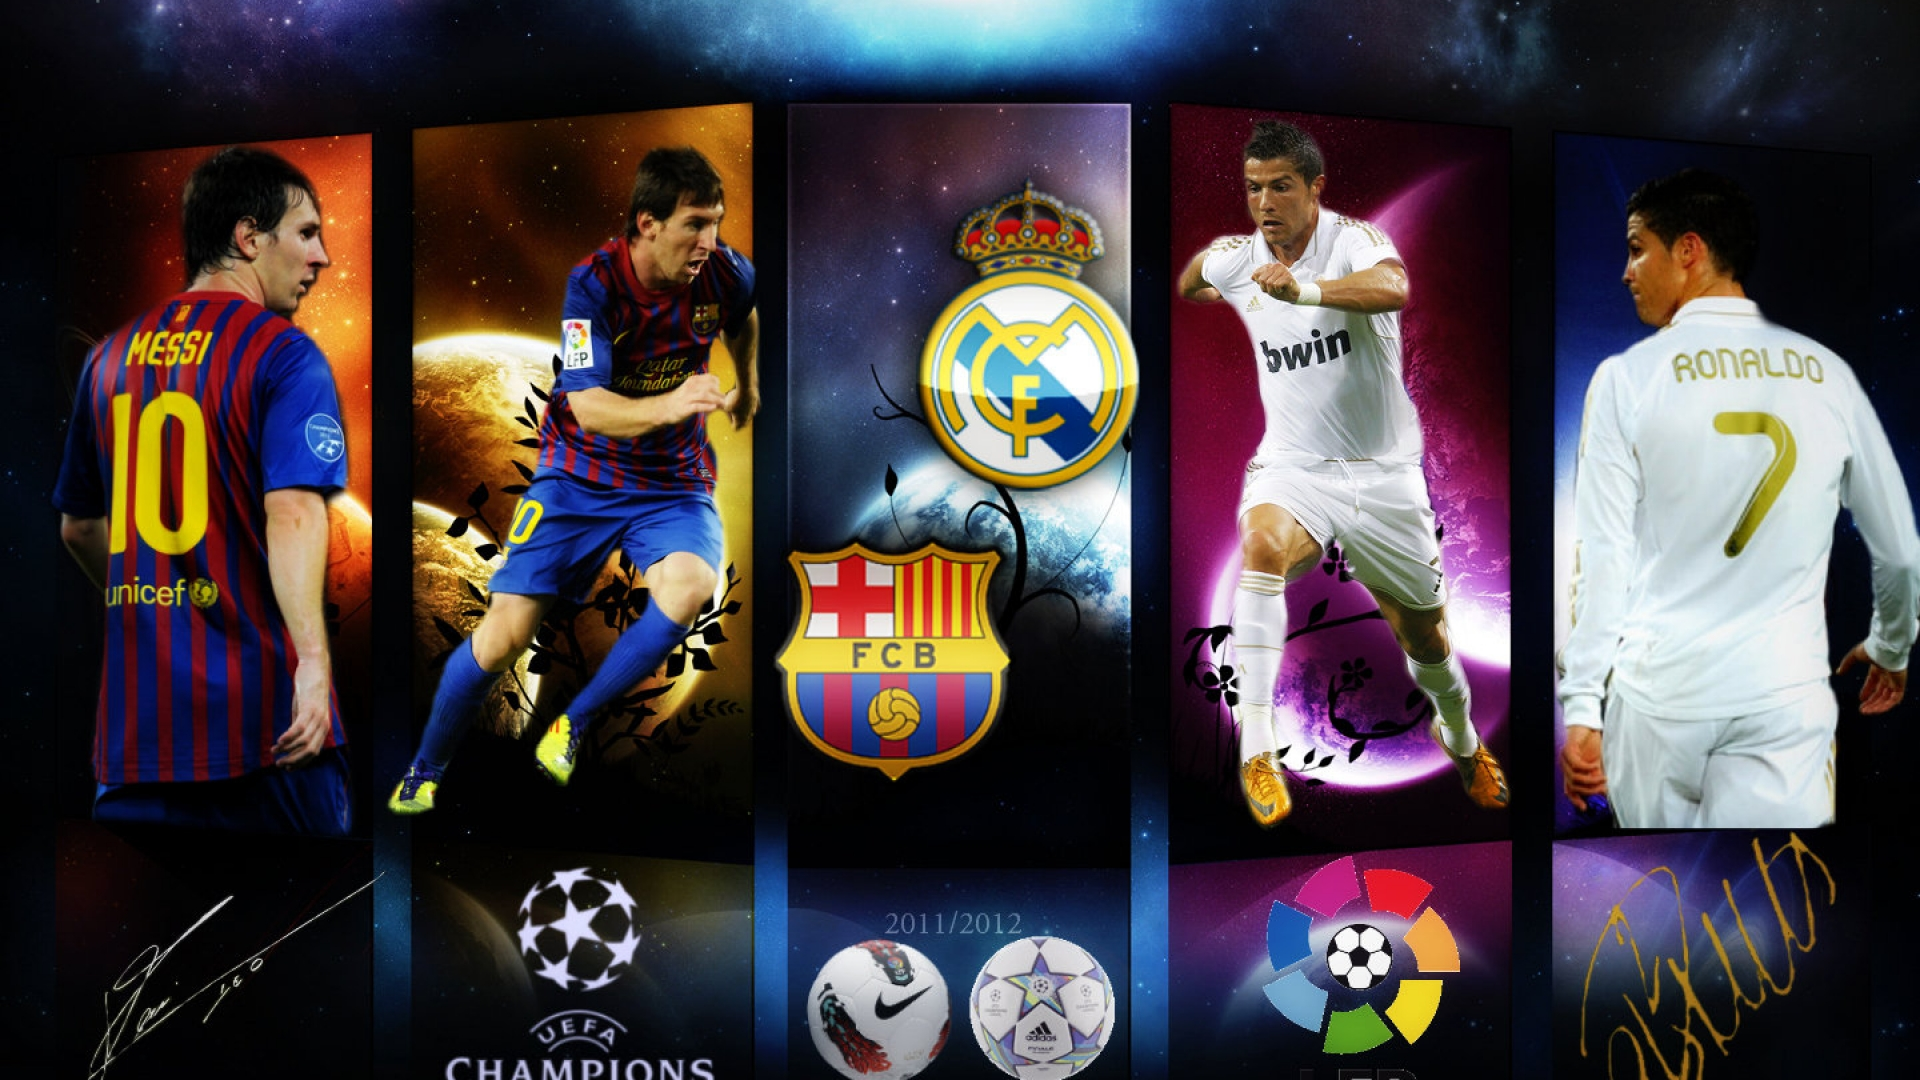 Real madrid wallpaper soccer wallpaper hd wallpapers real madrid wallpaper soccer wallpaper voltagebd Choice Image